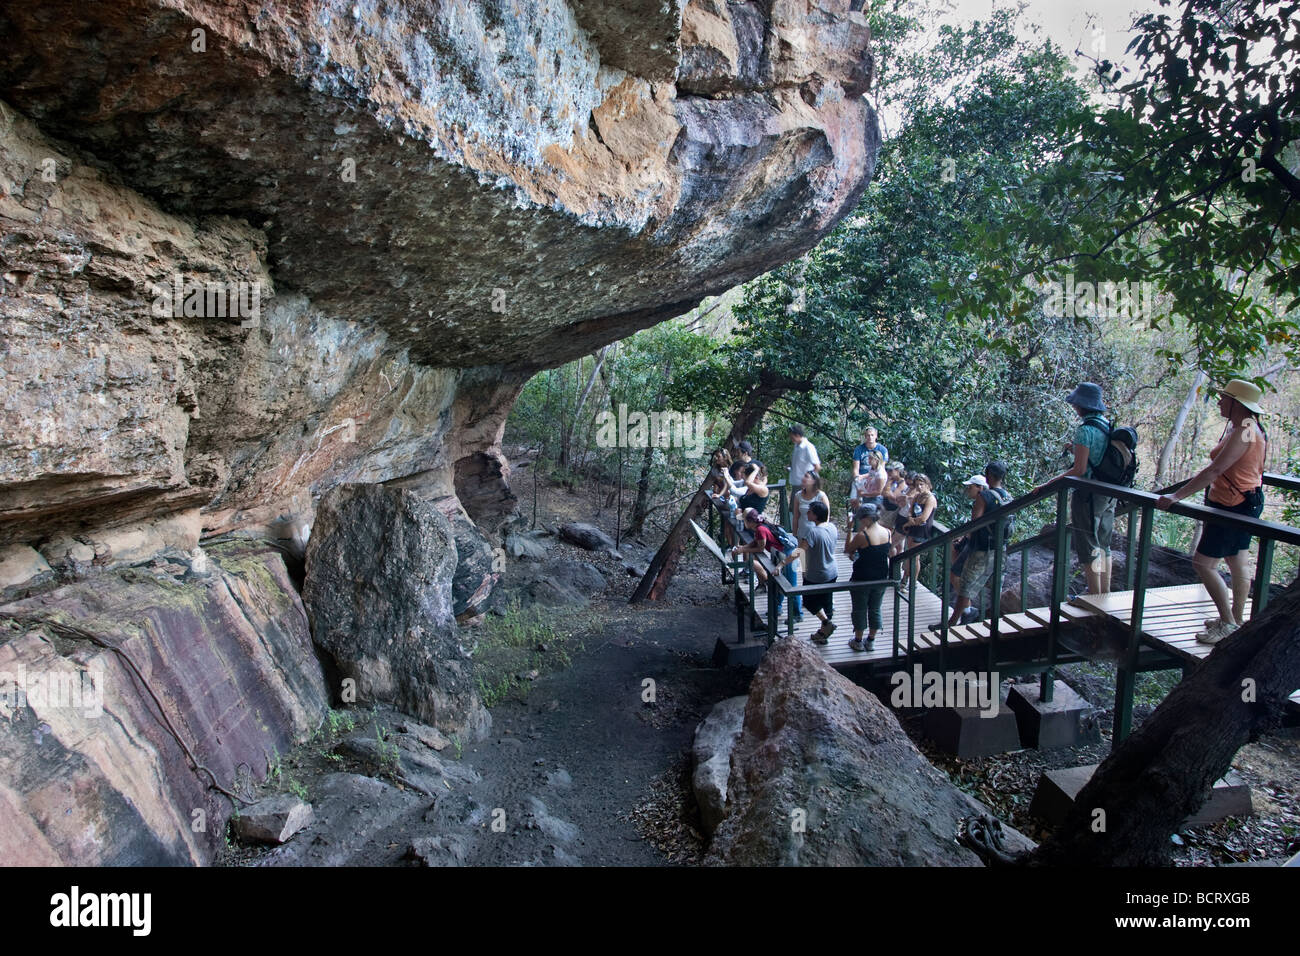 A group of tourists listening to a talk and looking at Aboriginal rock art at Anbangbang Gallery at Nourlangie Rock. - Stock Image